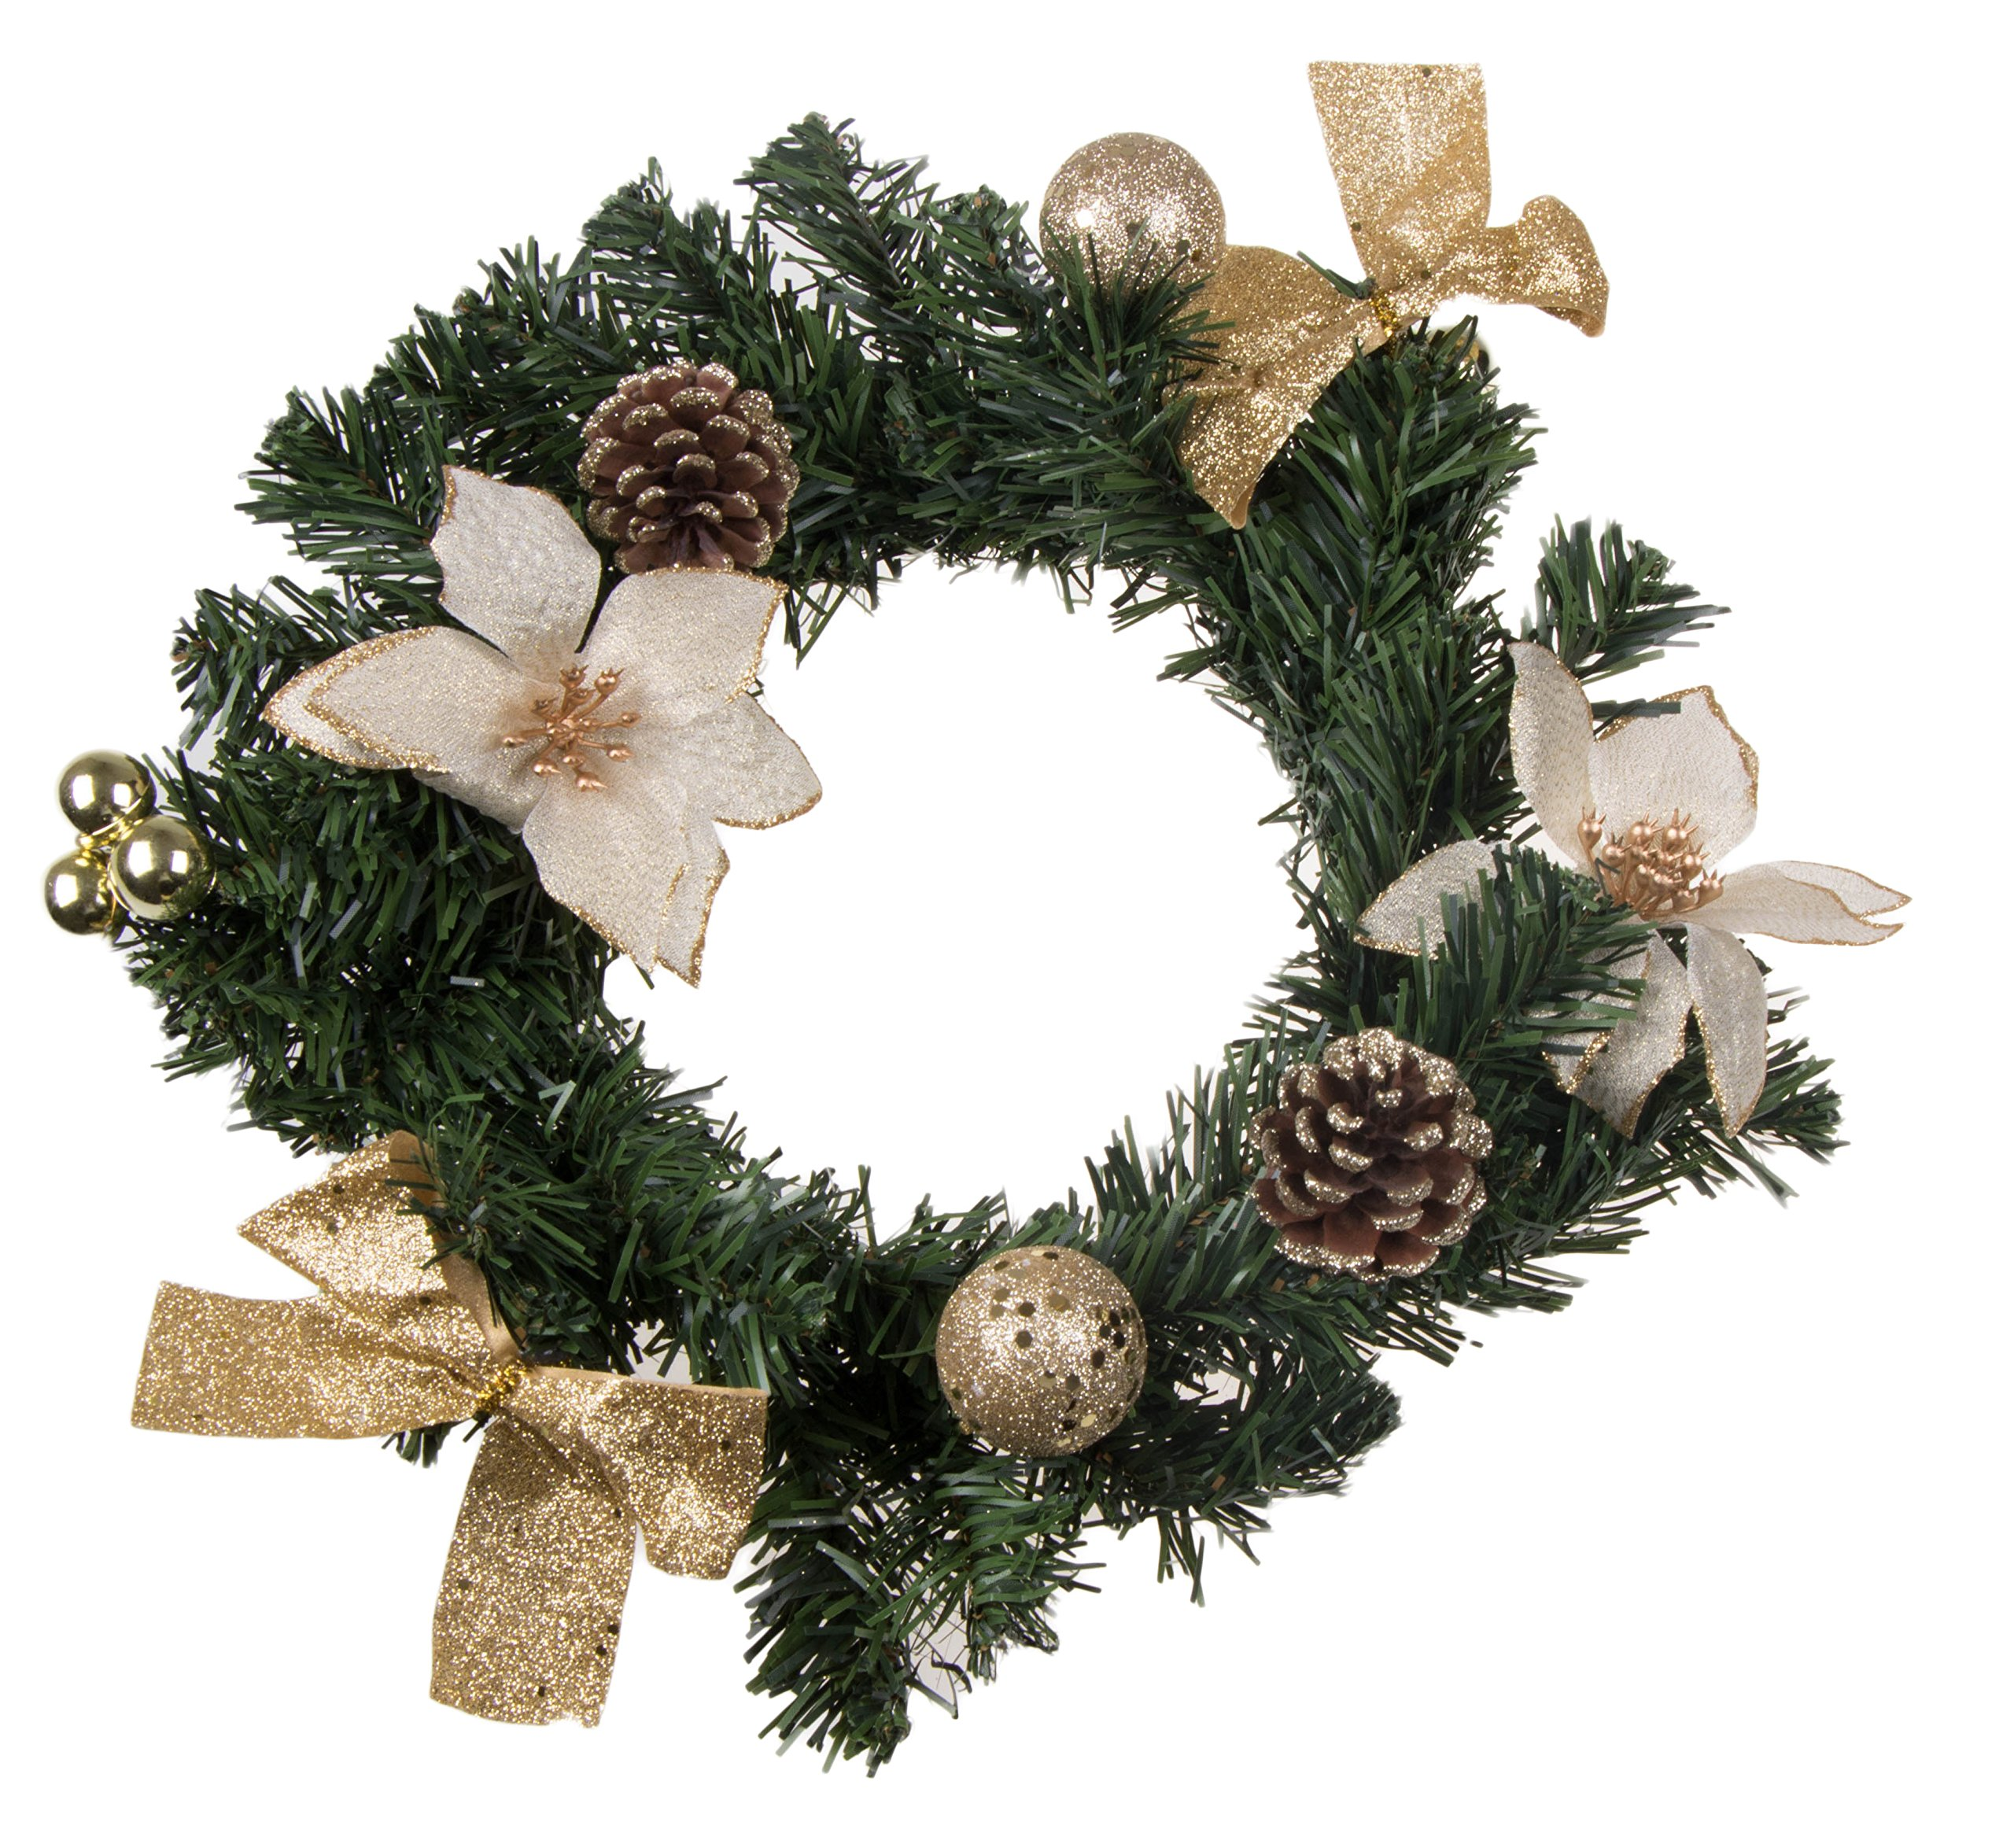 "Christmas Wreath with White Poinsettia, Snow Covered Pine Cones, Gold Bows and Ornaments | Perfect for Interior or Exterior Christmas Decor | Hang on Doors, Walls, Stairs and More! | 10""x10""x3"""